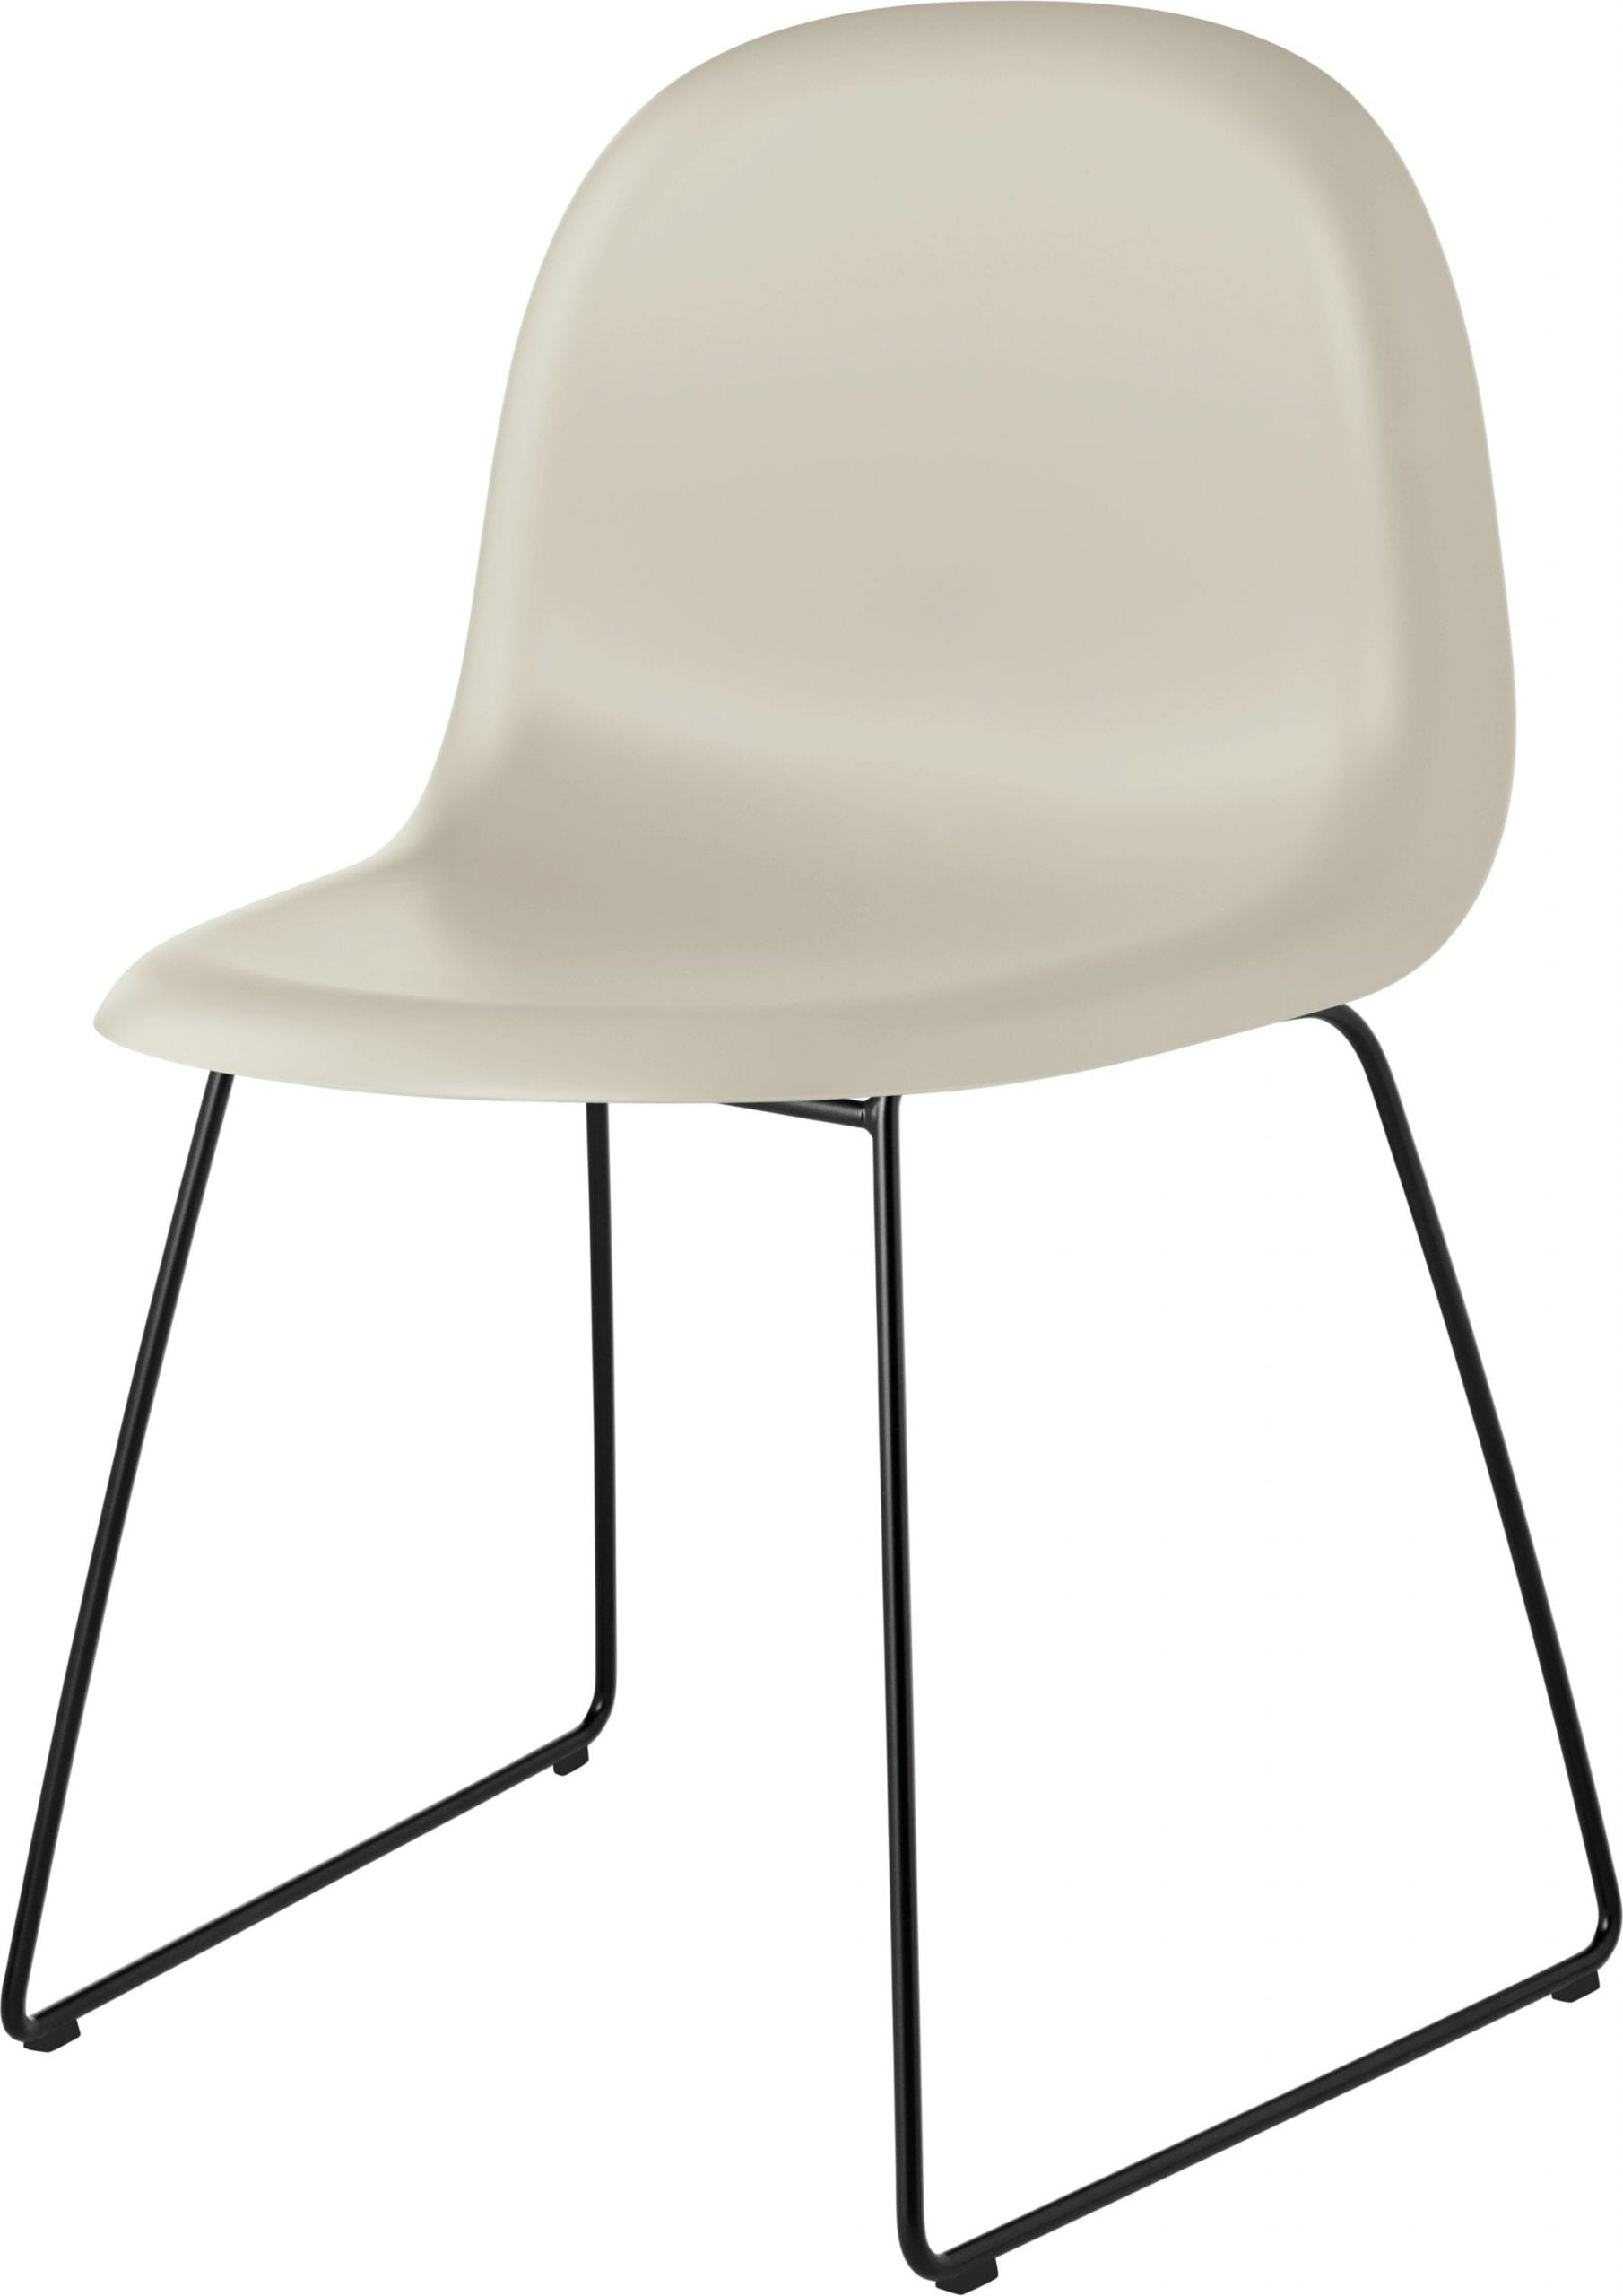 3D Dining Chair- Sledge Base